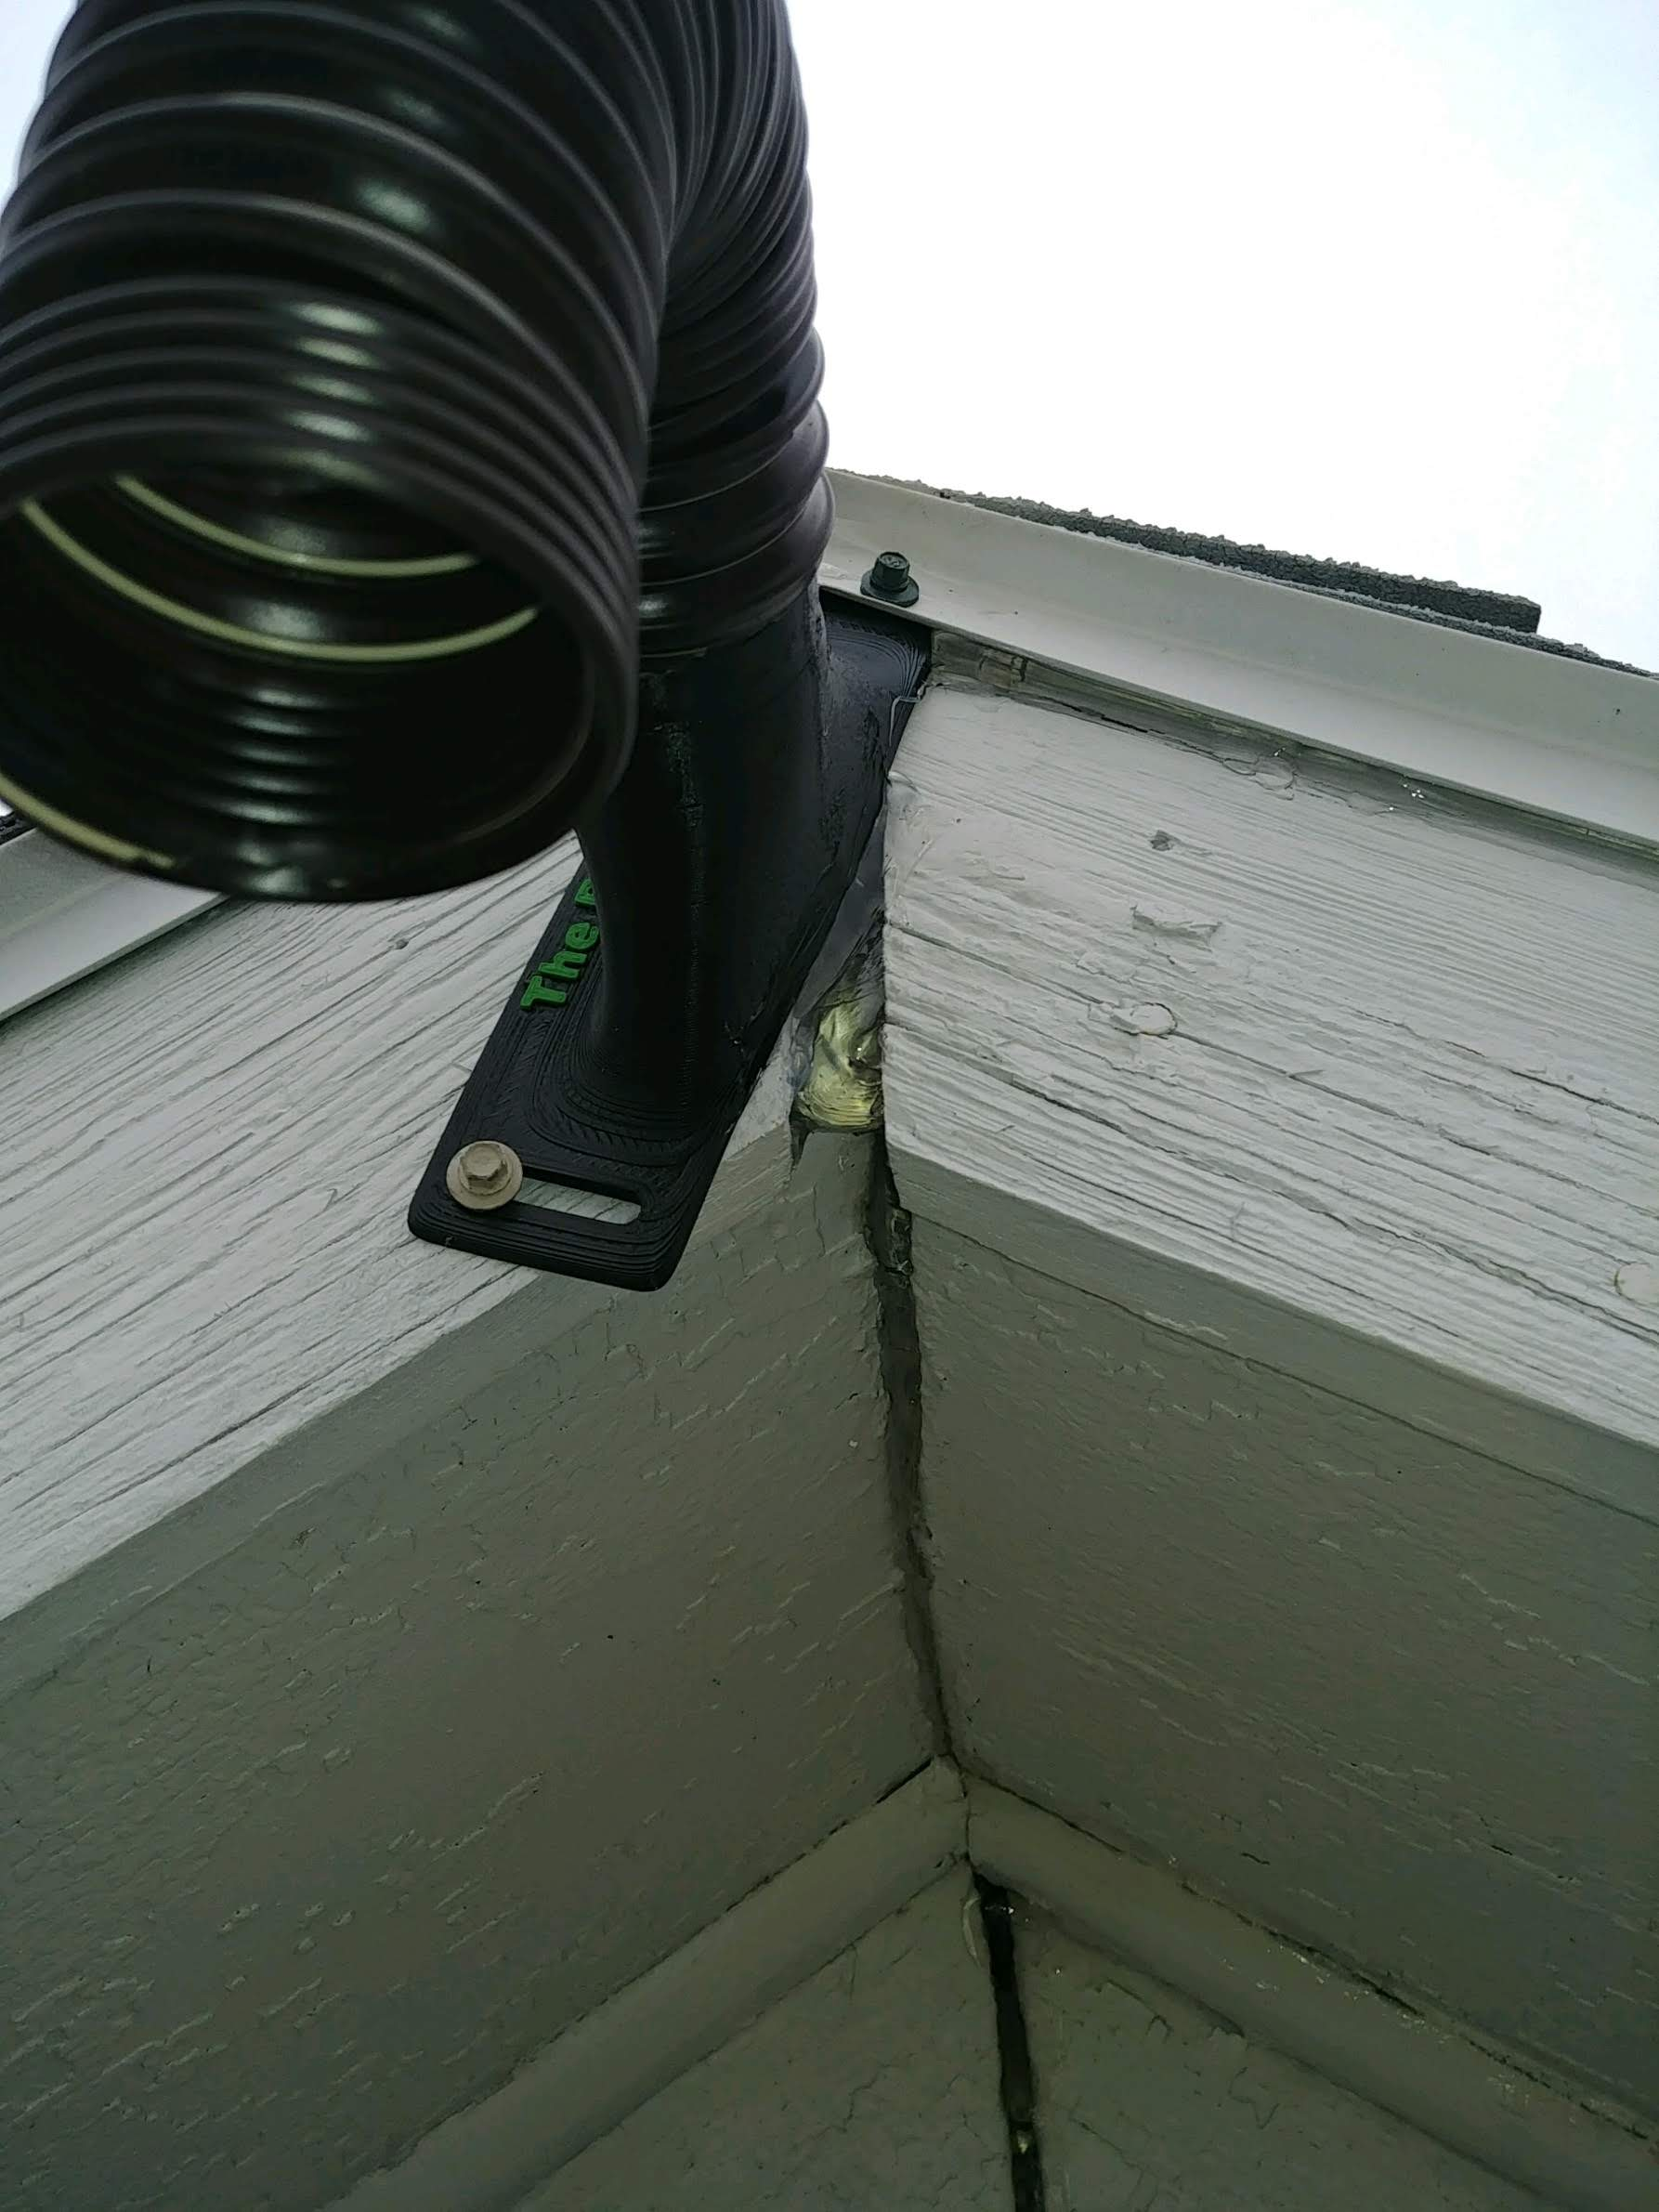 Bat Removal Product to Get Bats out of the Attic